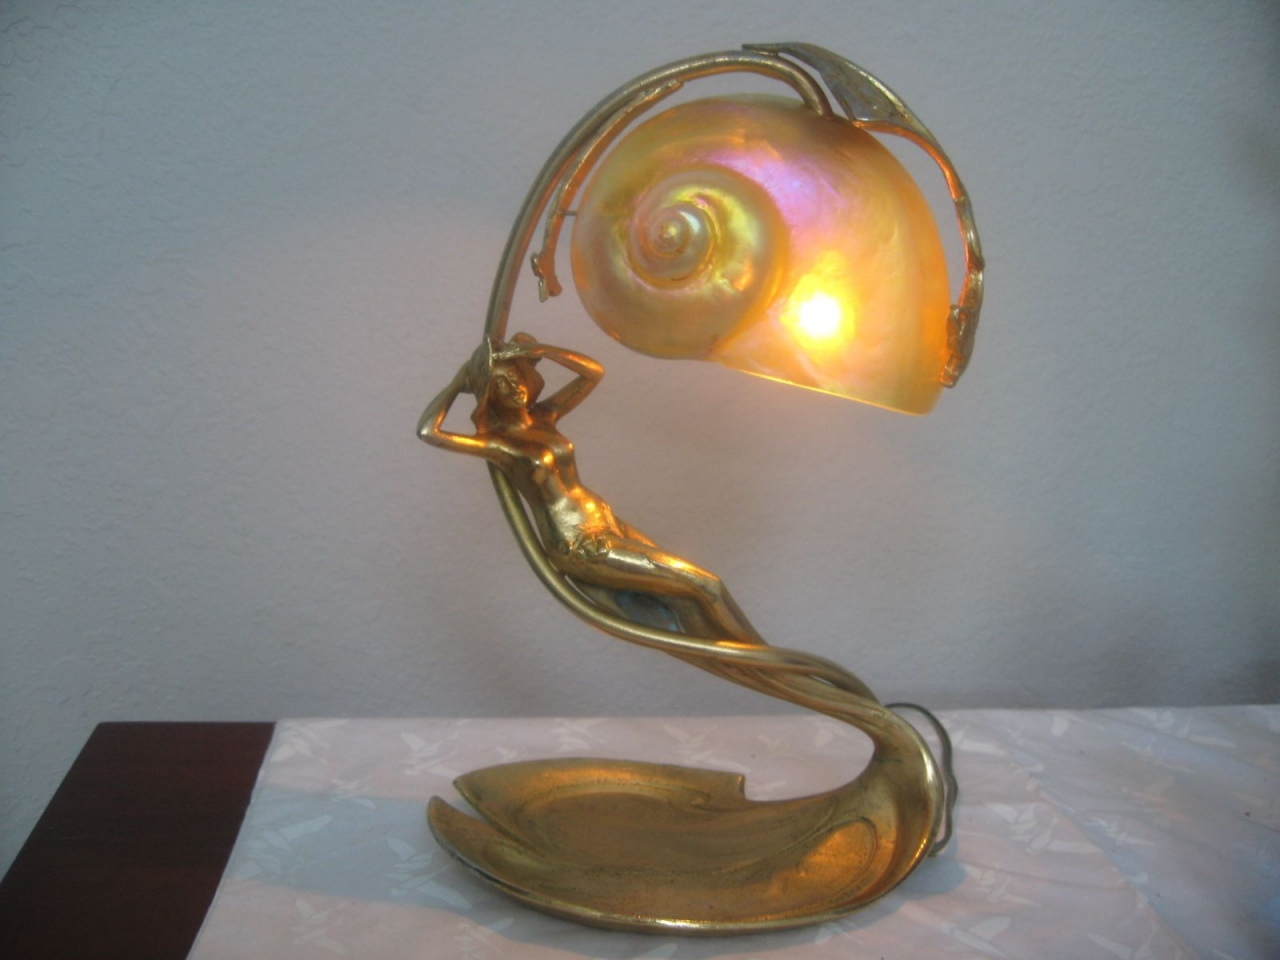 Art Deco Style & Light Art Deco Peacock Sculptural Floor Lamp Lorenzo Sculptures